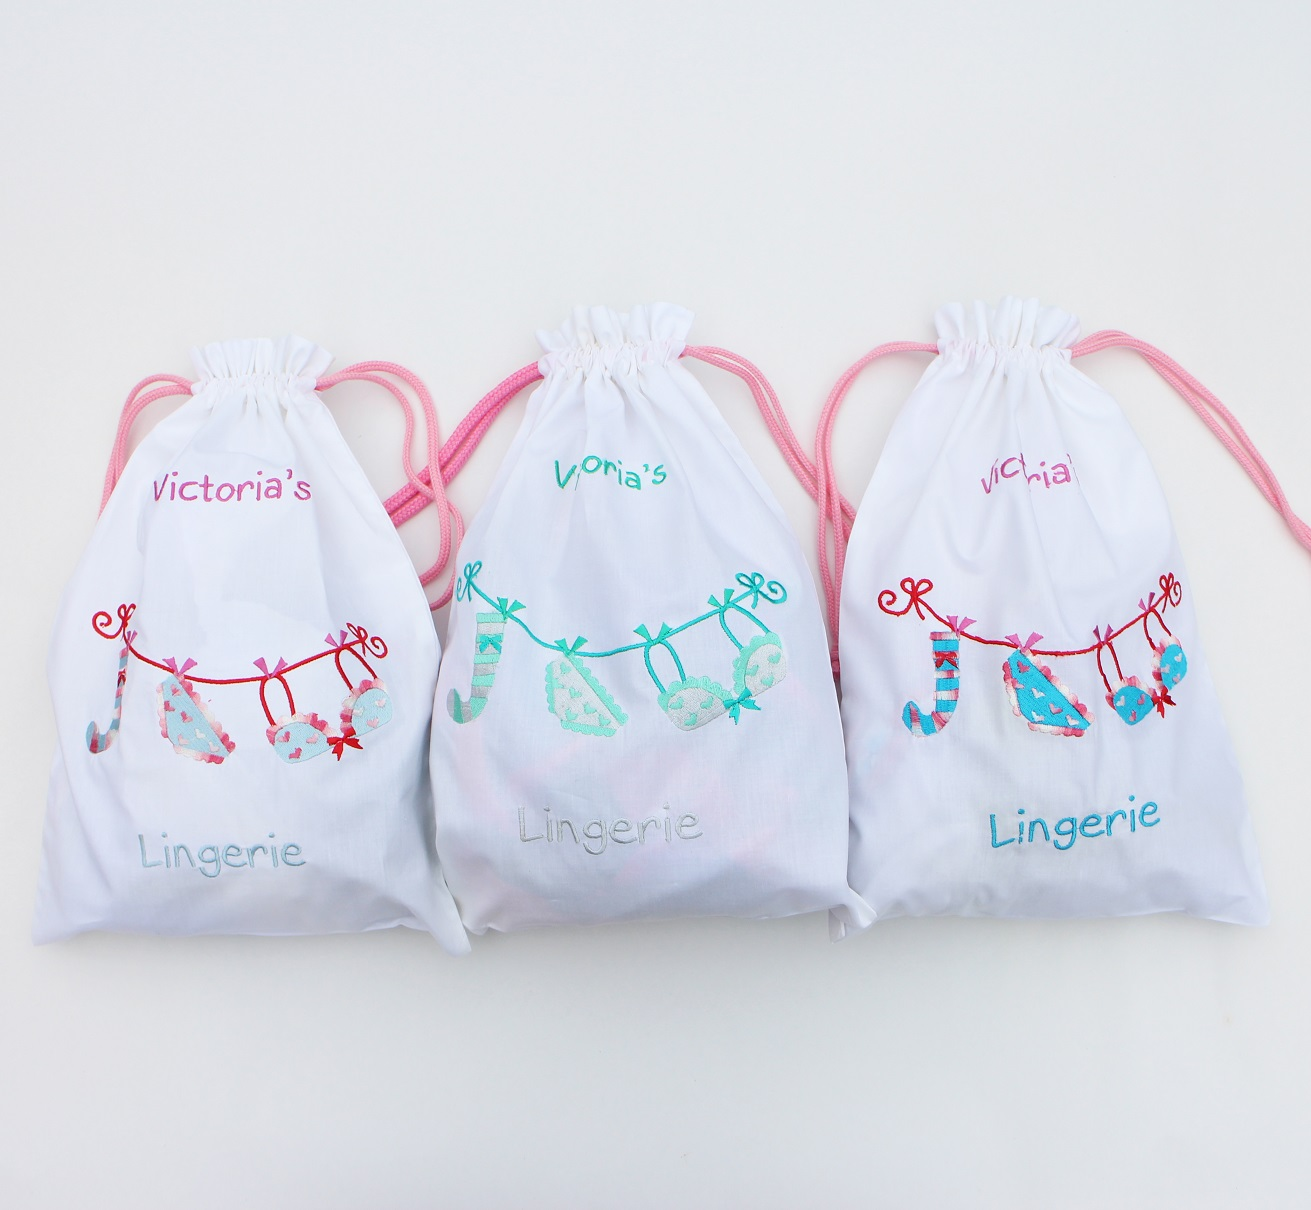 Cute Laundry Bags laundry bag, lingerie bag, shoe bag, travel bag, gifts bag